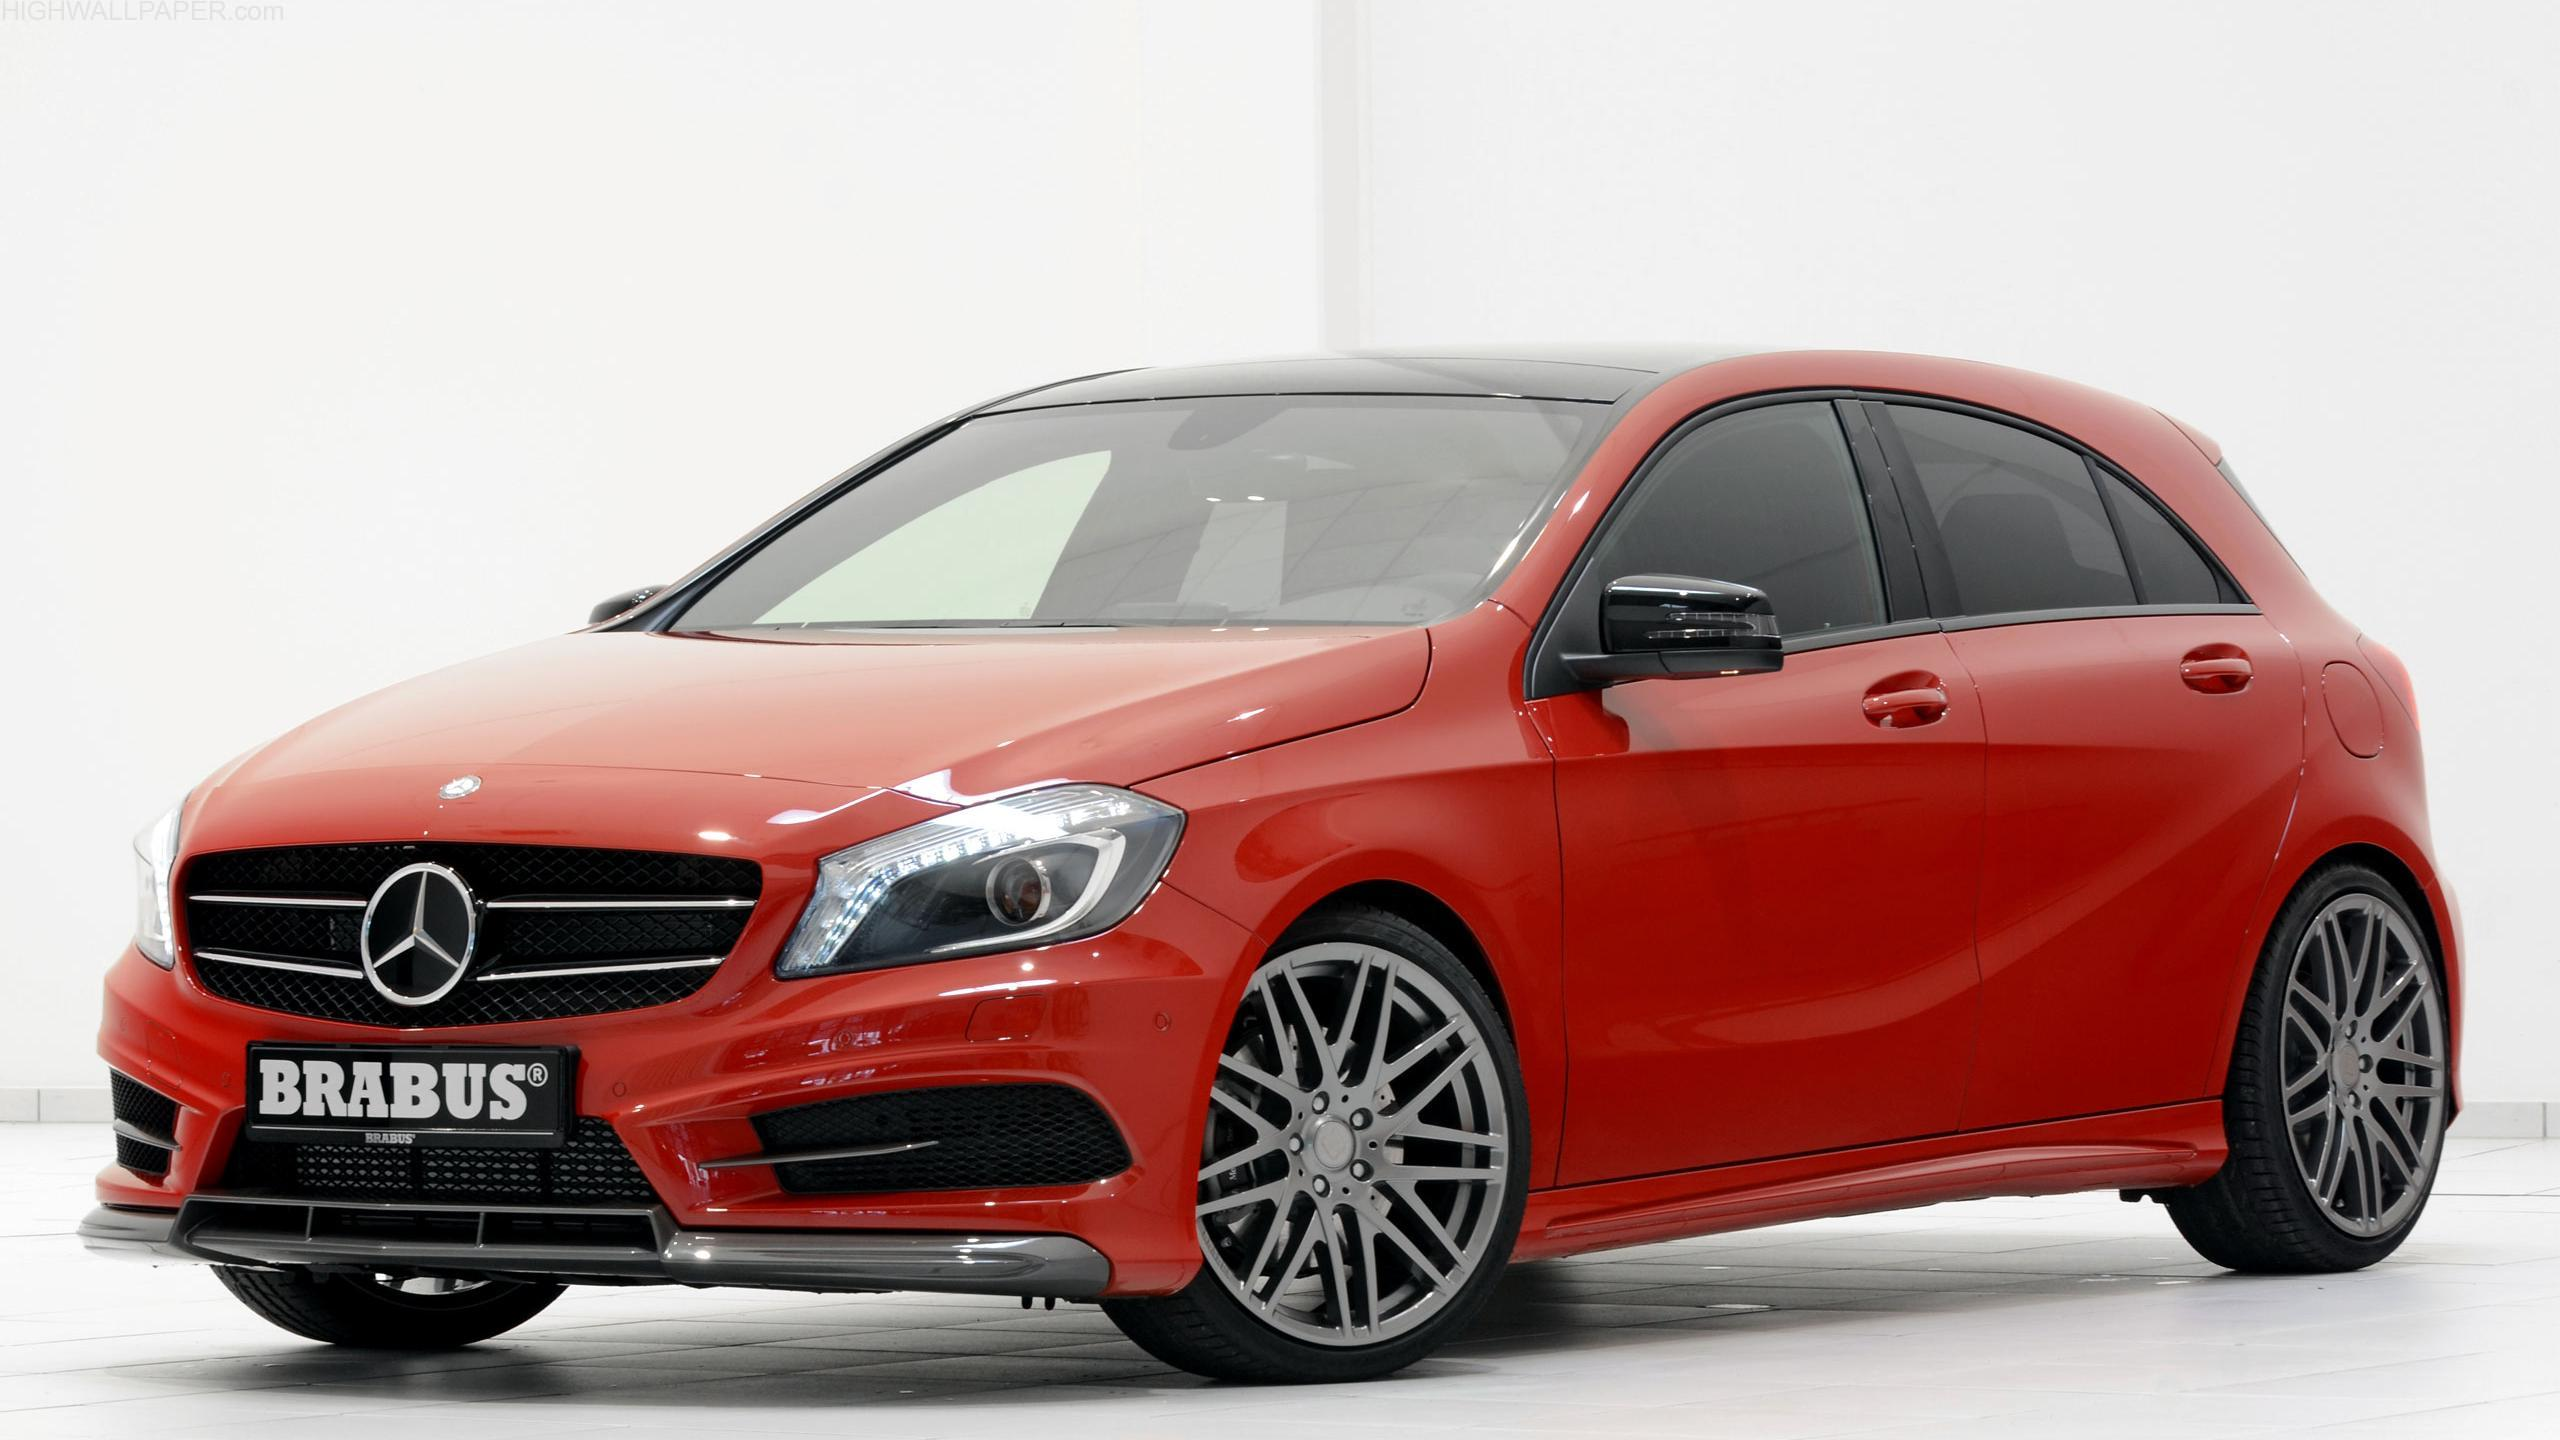 Mercedes Brabus Red